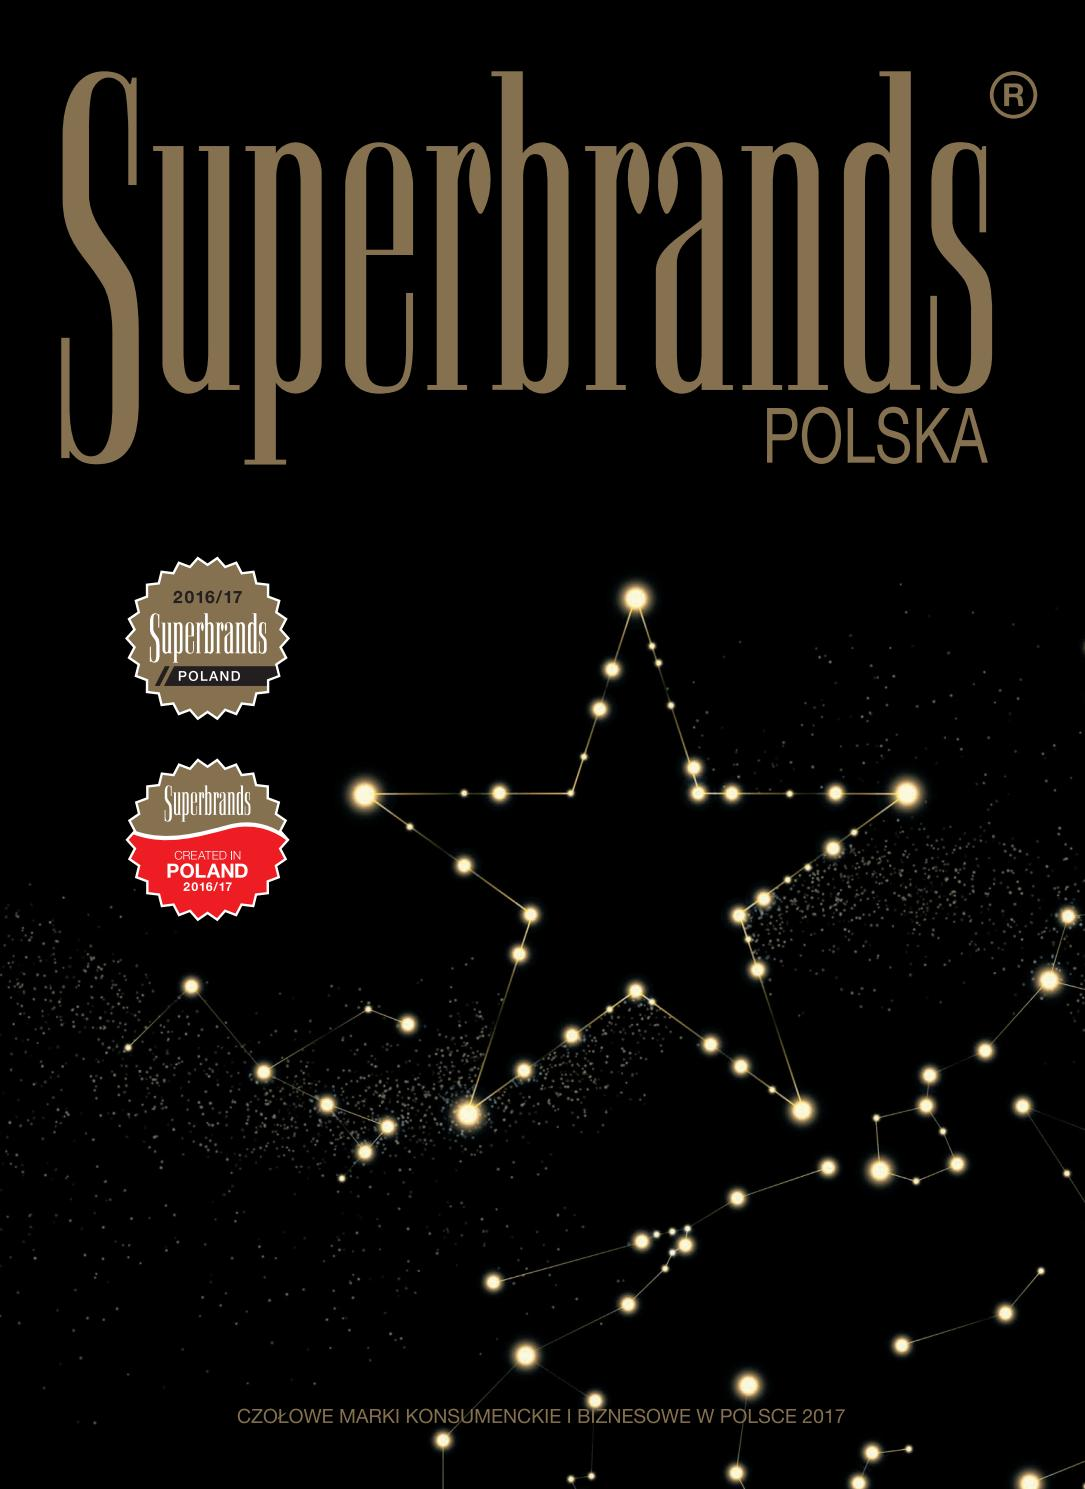 eb9eb58c4fc38 Album superbrands polska 2017 by Superbrands - issuu